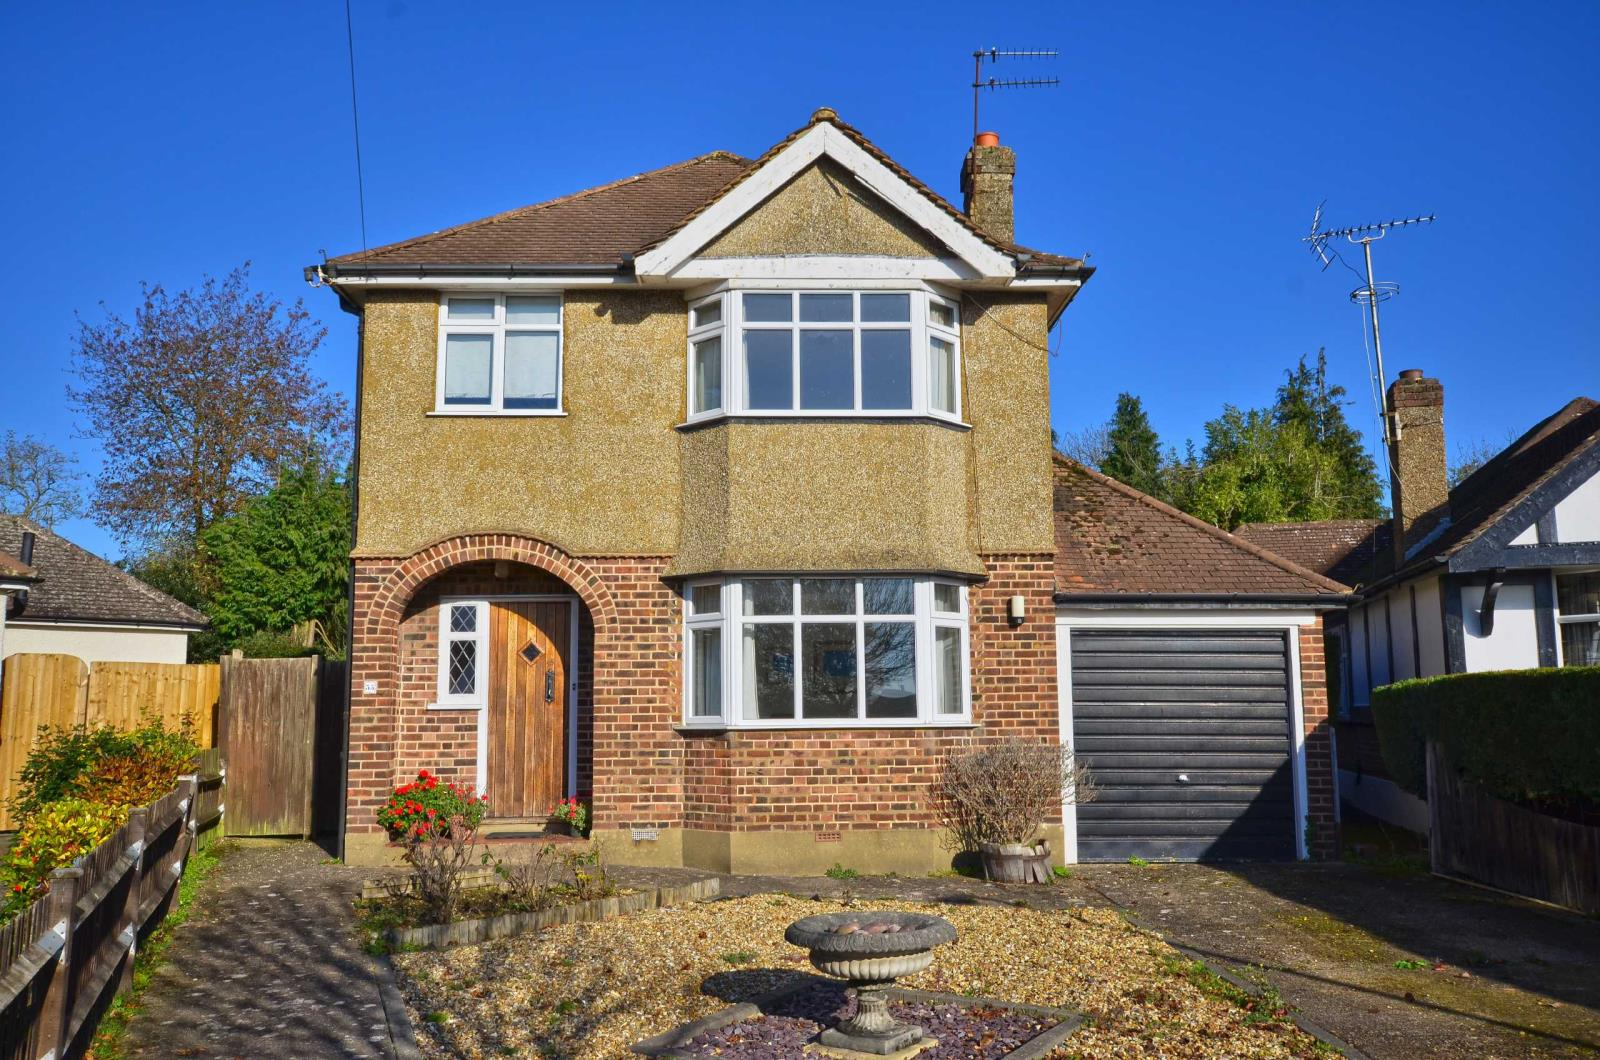 3 Bedrooms Terraced Bungalow for sale in Strangeways, Watford, Hertfordshire, WD17